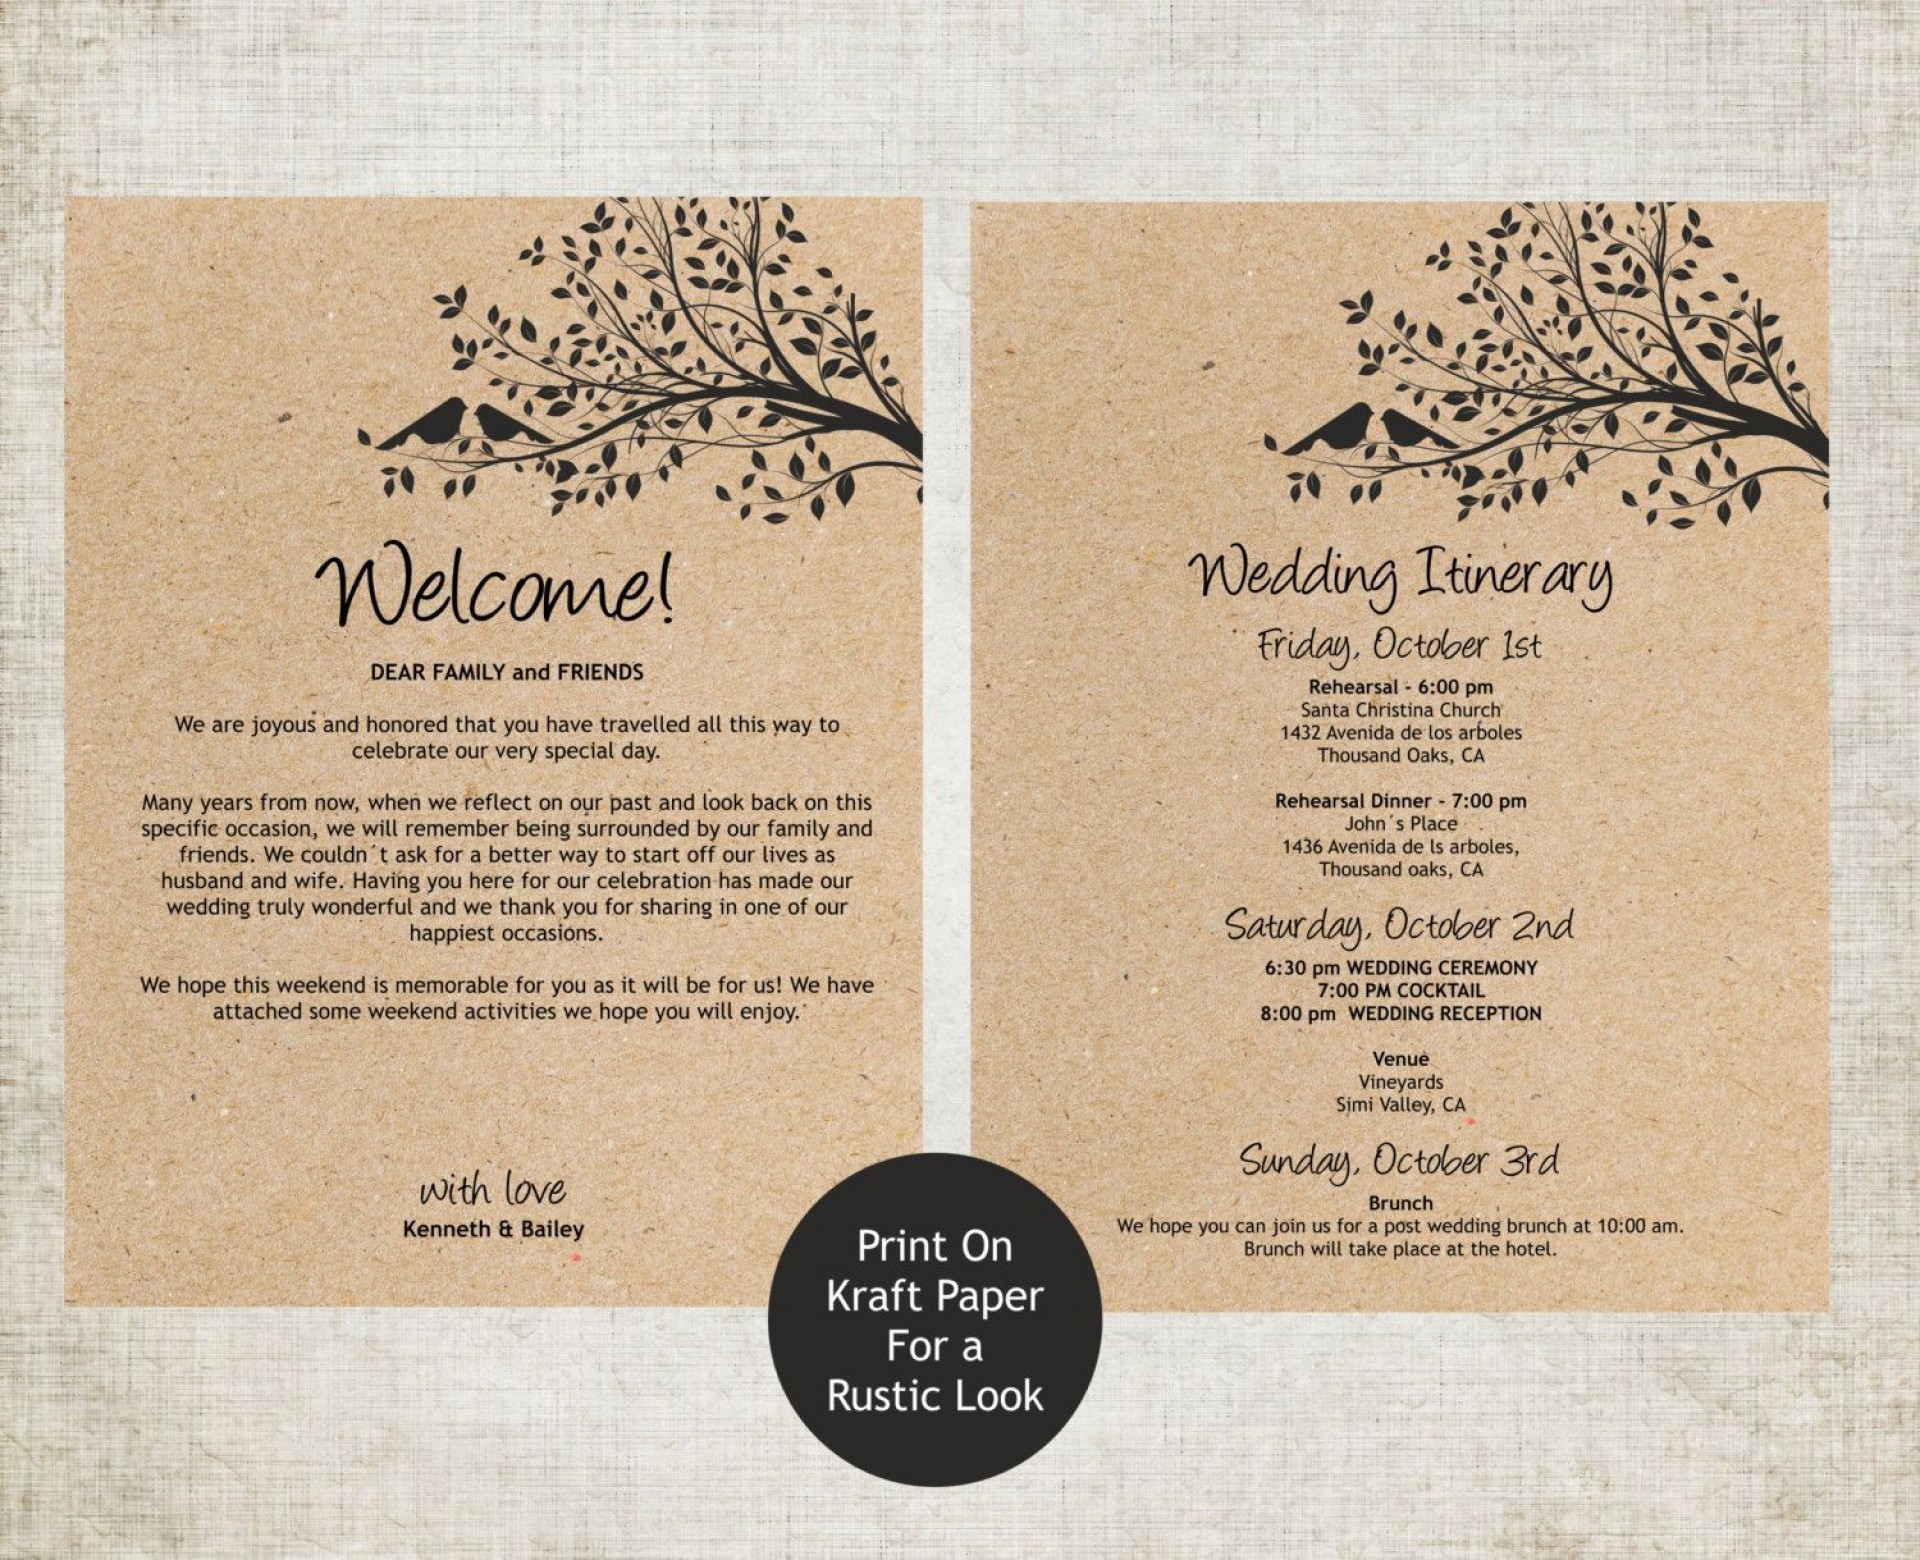 007 Awful Cruise Wedding Welcome Letter Template Concept 1920